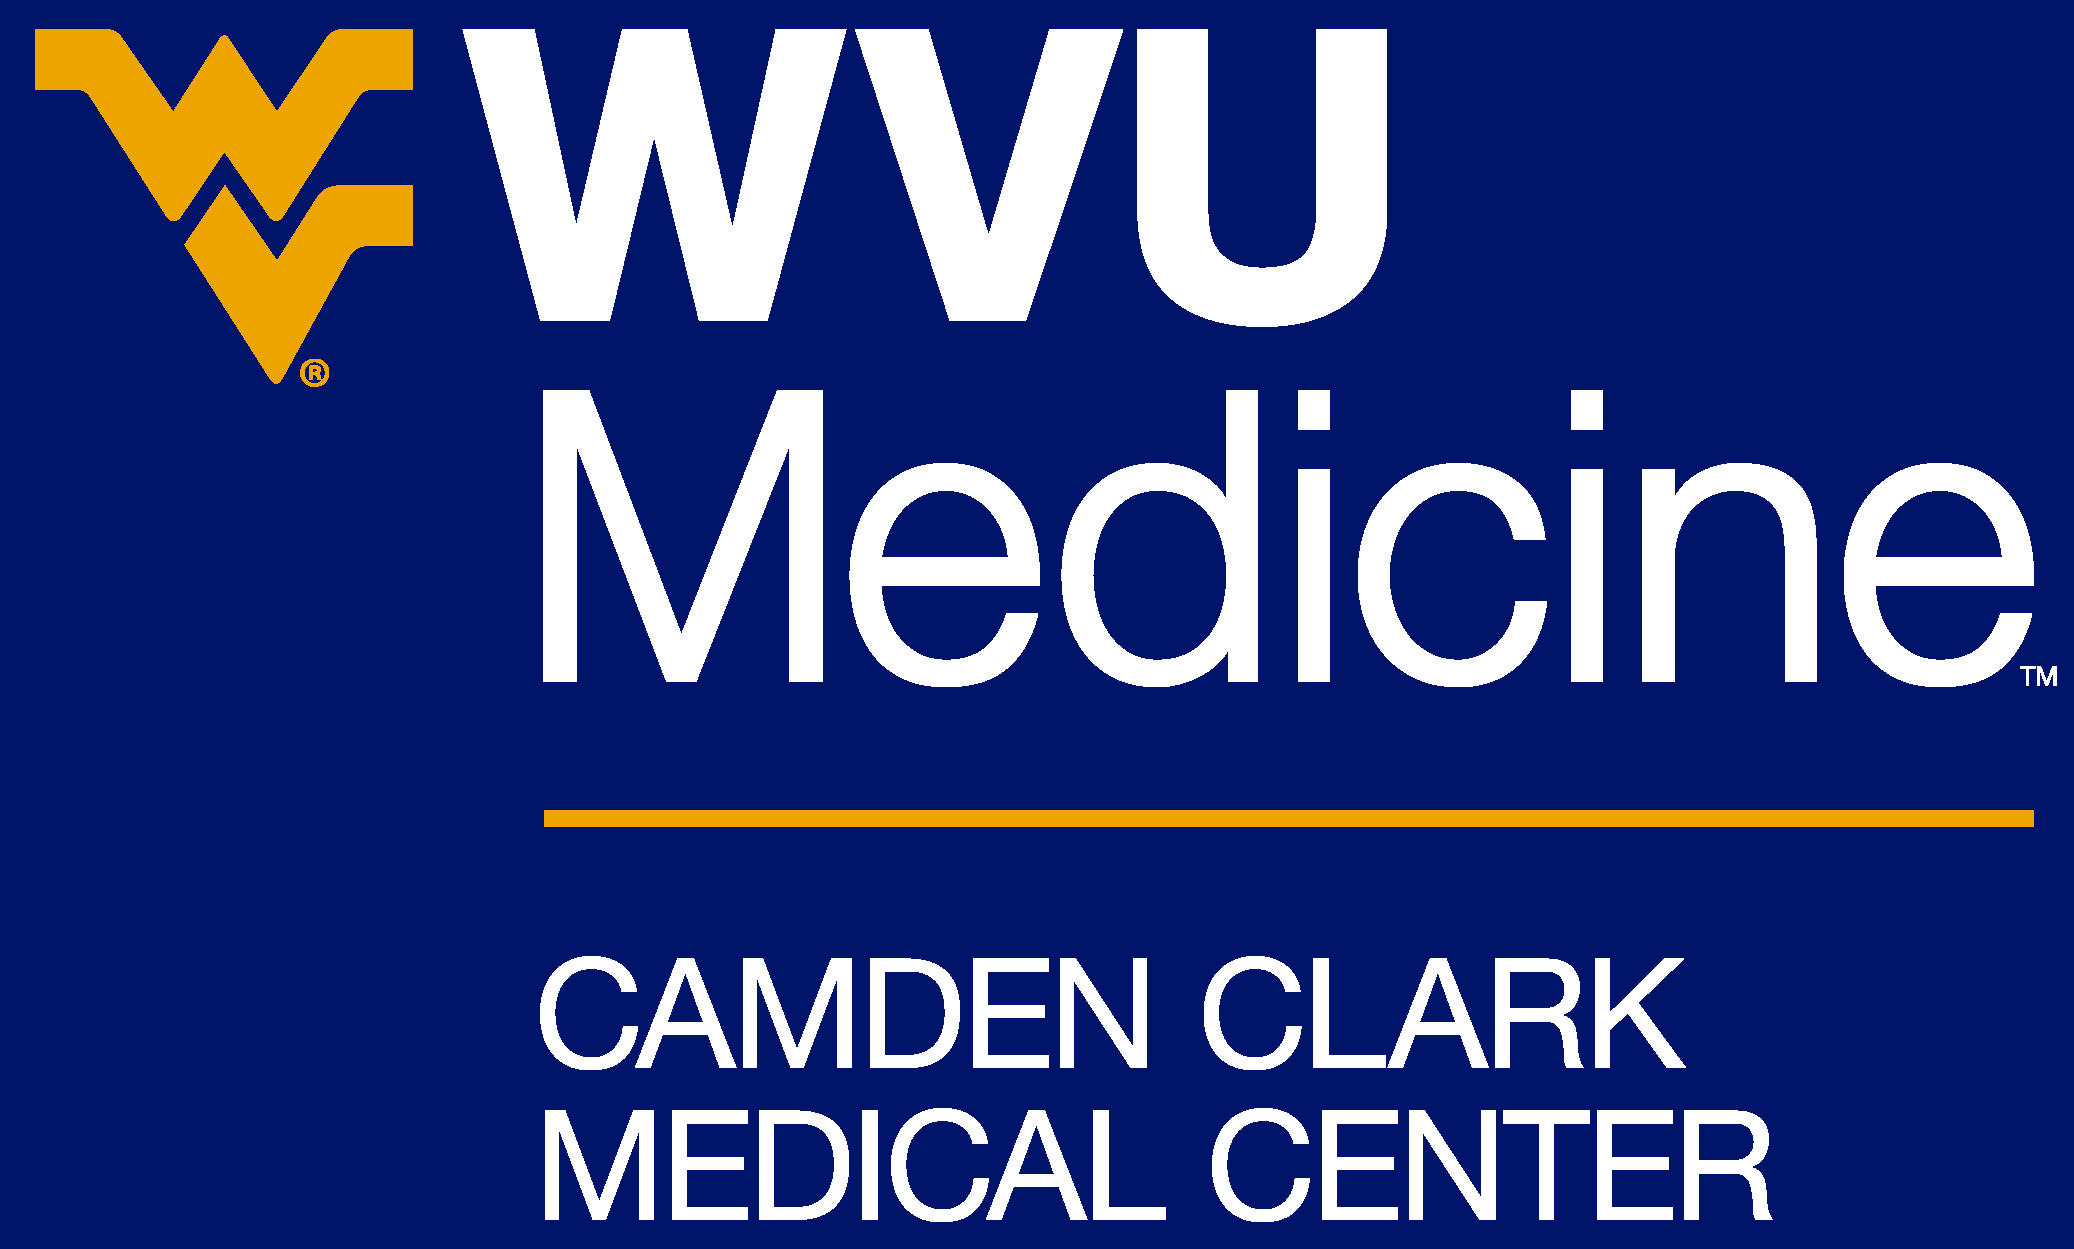 WVUMedicineCAMDEN_STACKED124 and white_blue background-01.jpg